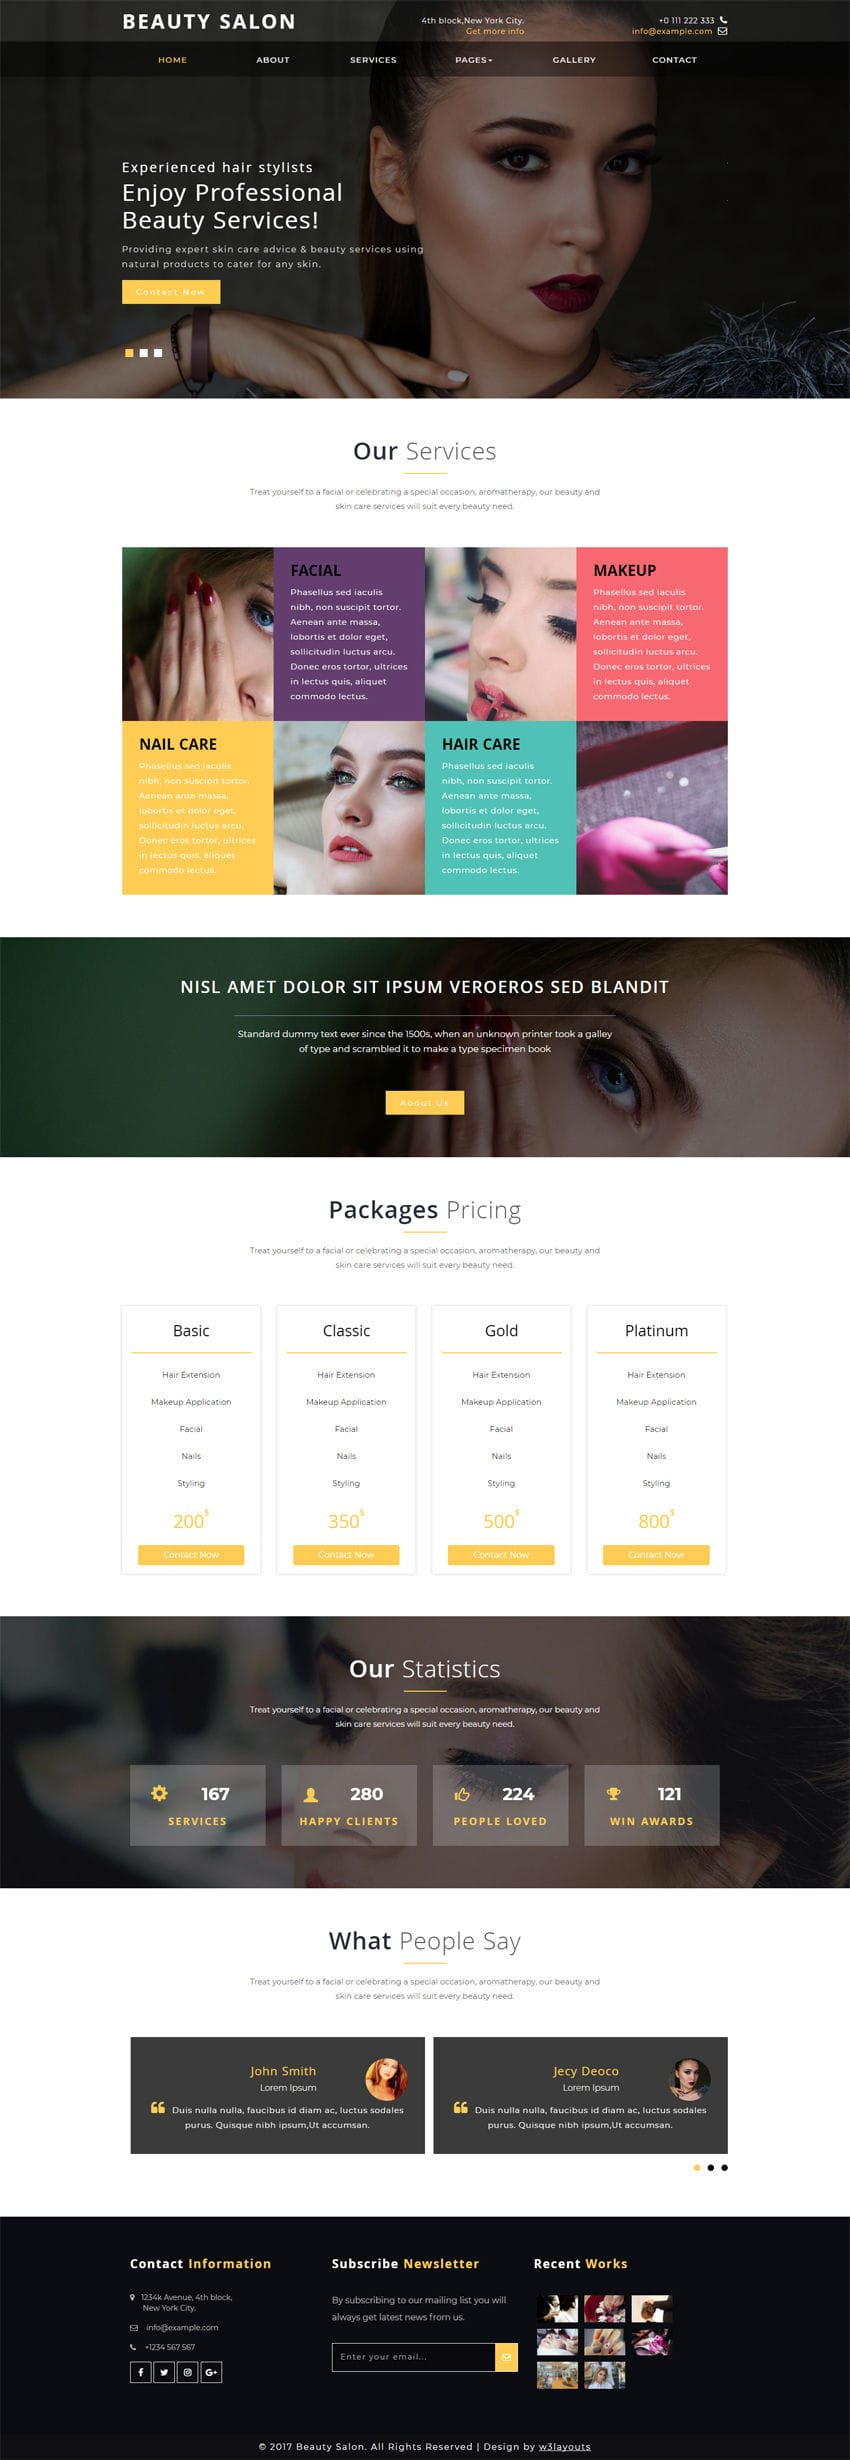 beauty salon a beauty category bootstrap responsive web template. Black Bedroom Furniture Sets. Home Design Ideas